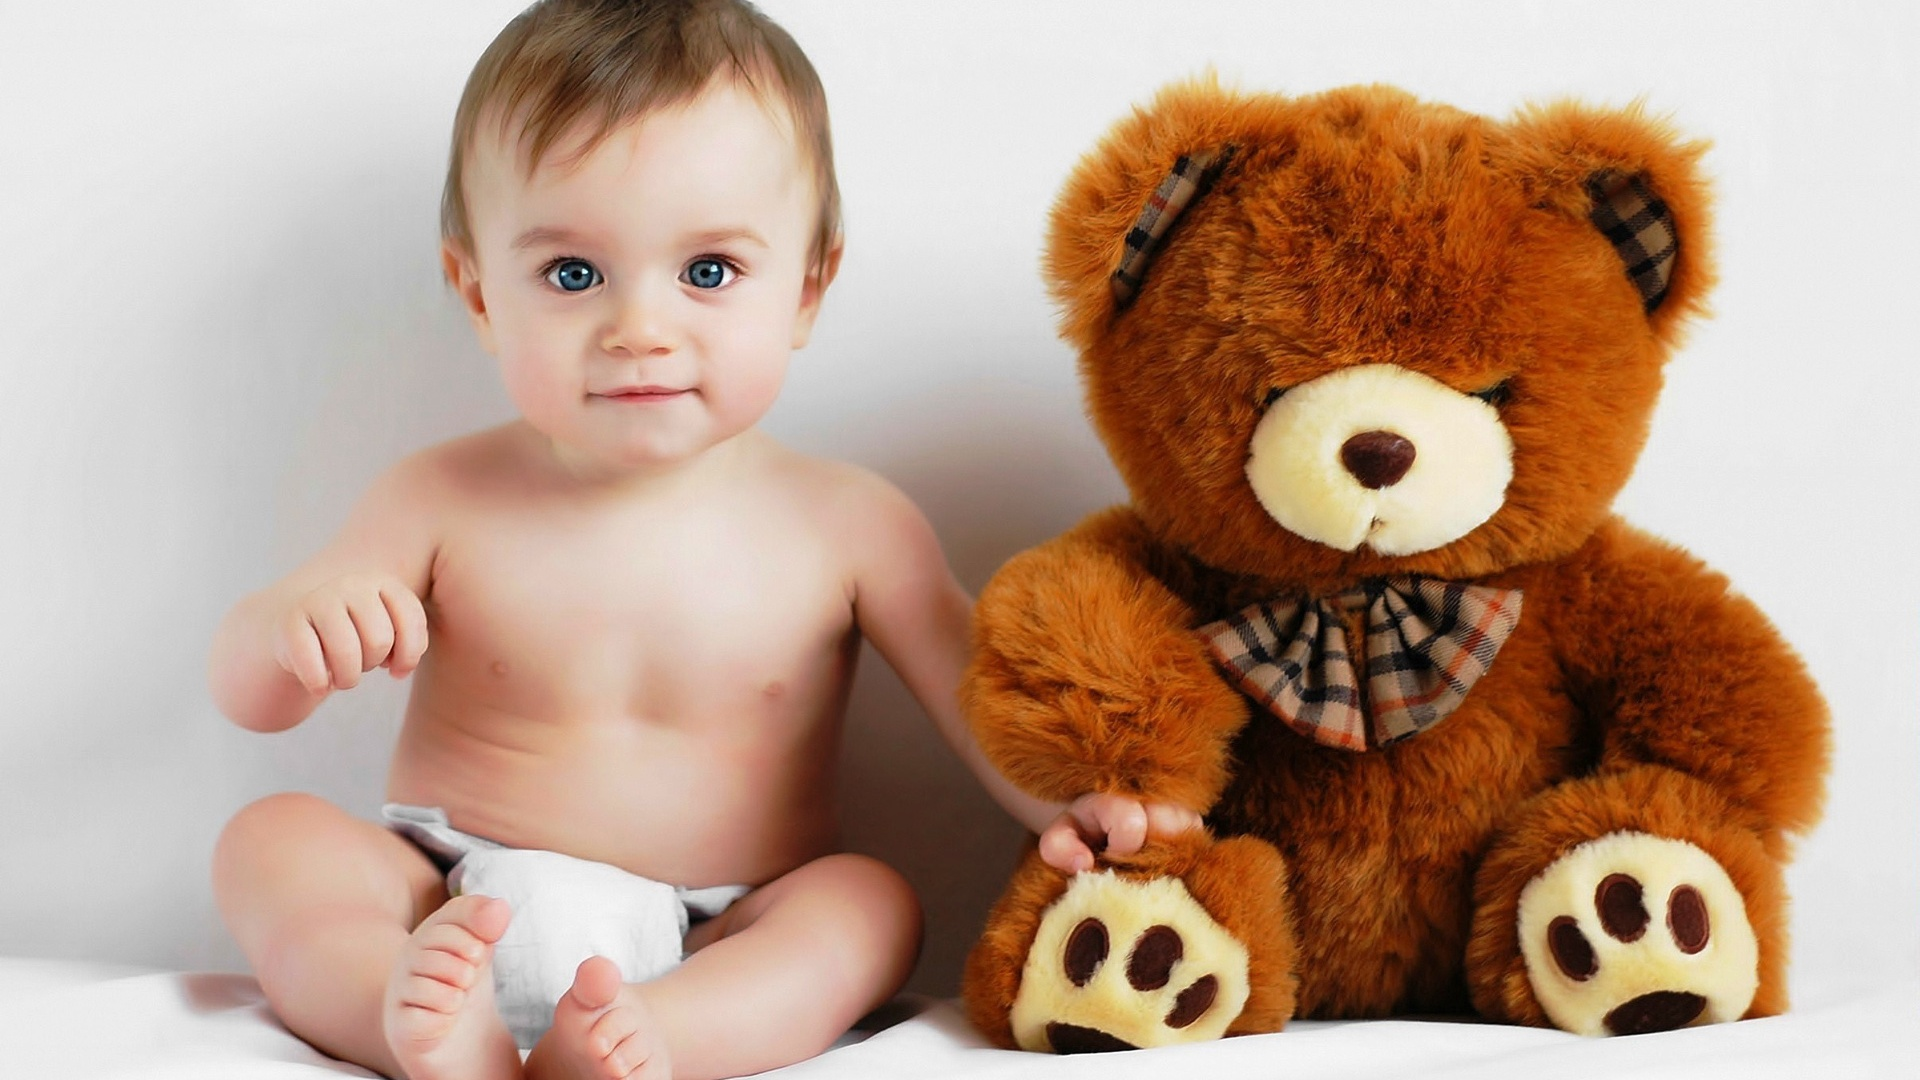 Baby and teddy bear photo wallpaper - 1920x1080